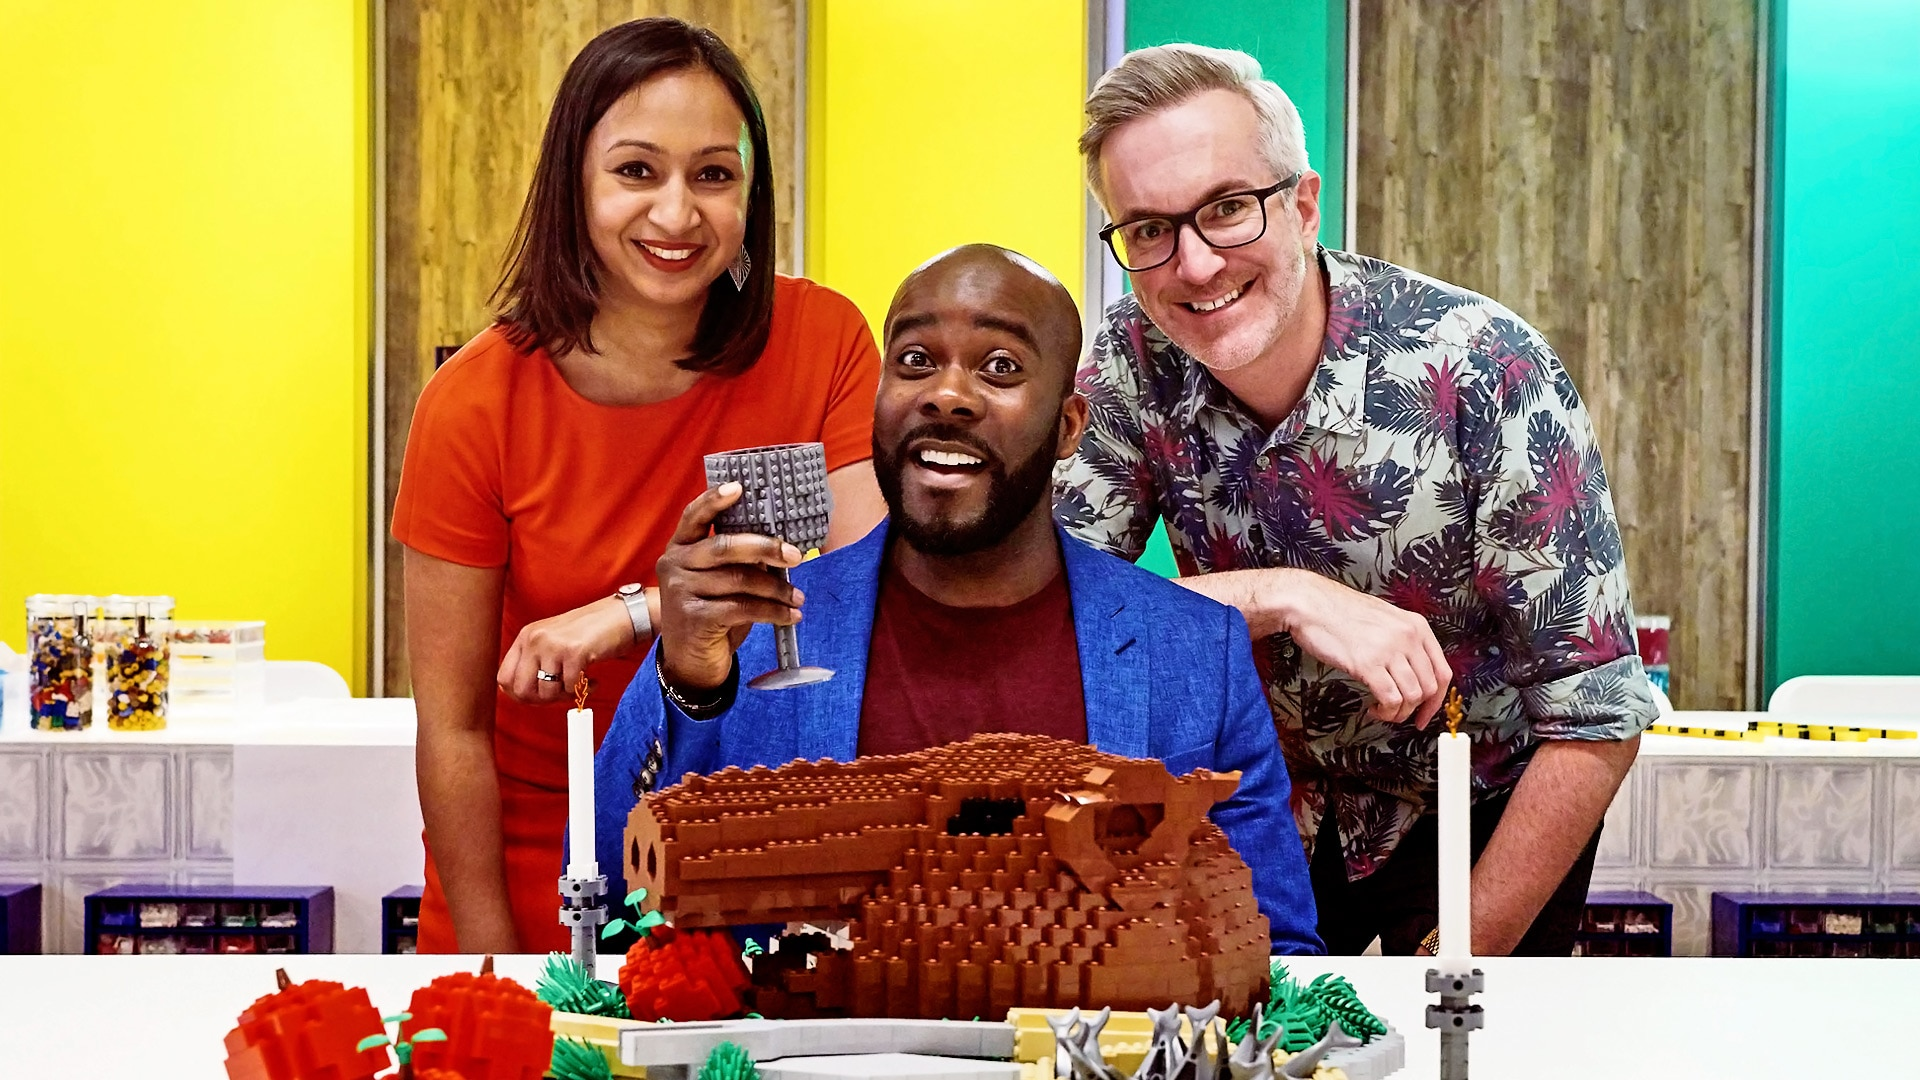 Inside Lego at Christmas - On Demand - All 4